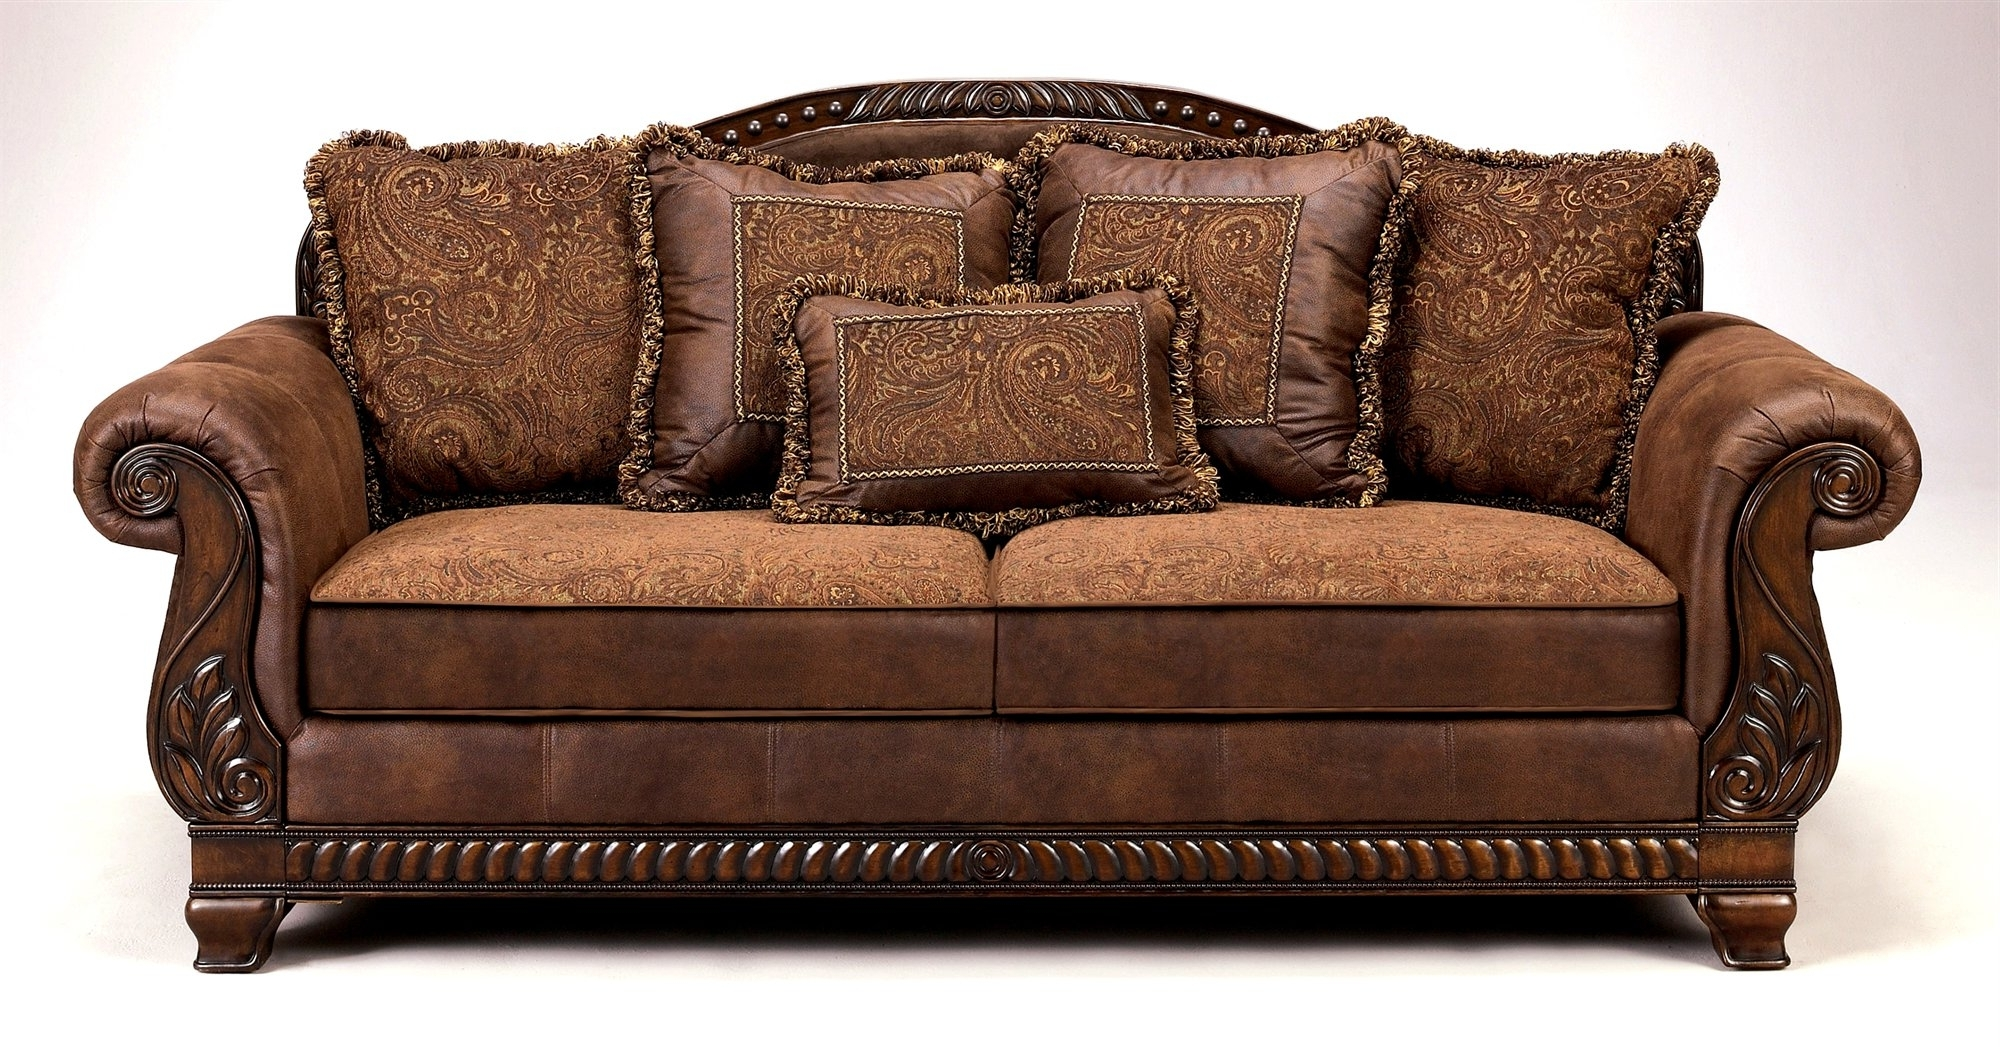 Traditional Sofas And Chairs For Most Popular Best Sofa Deals Elegant Sofas Living Room Furniture Chairs Living (View 9 of 15)